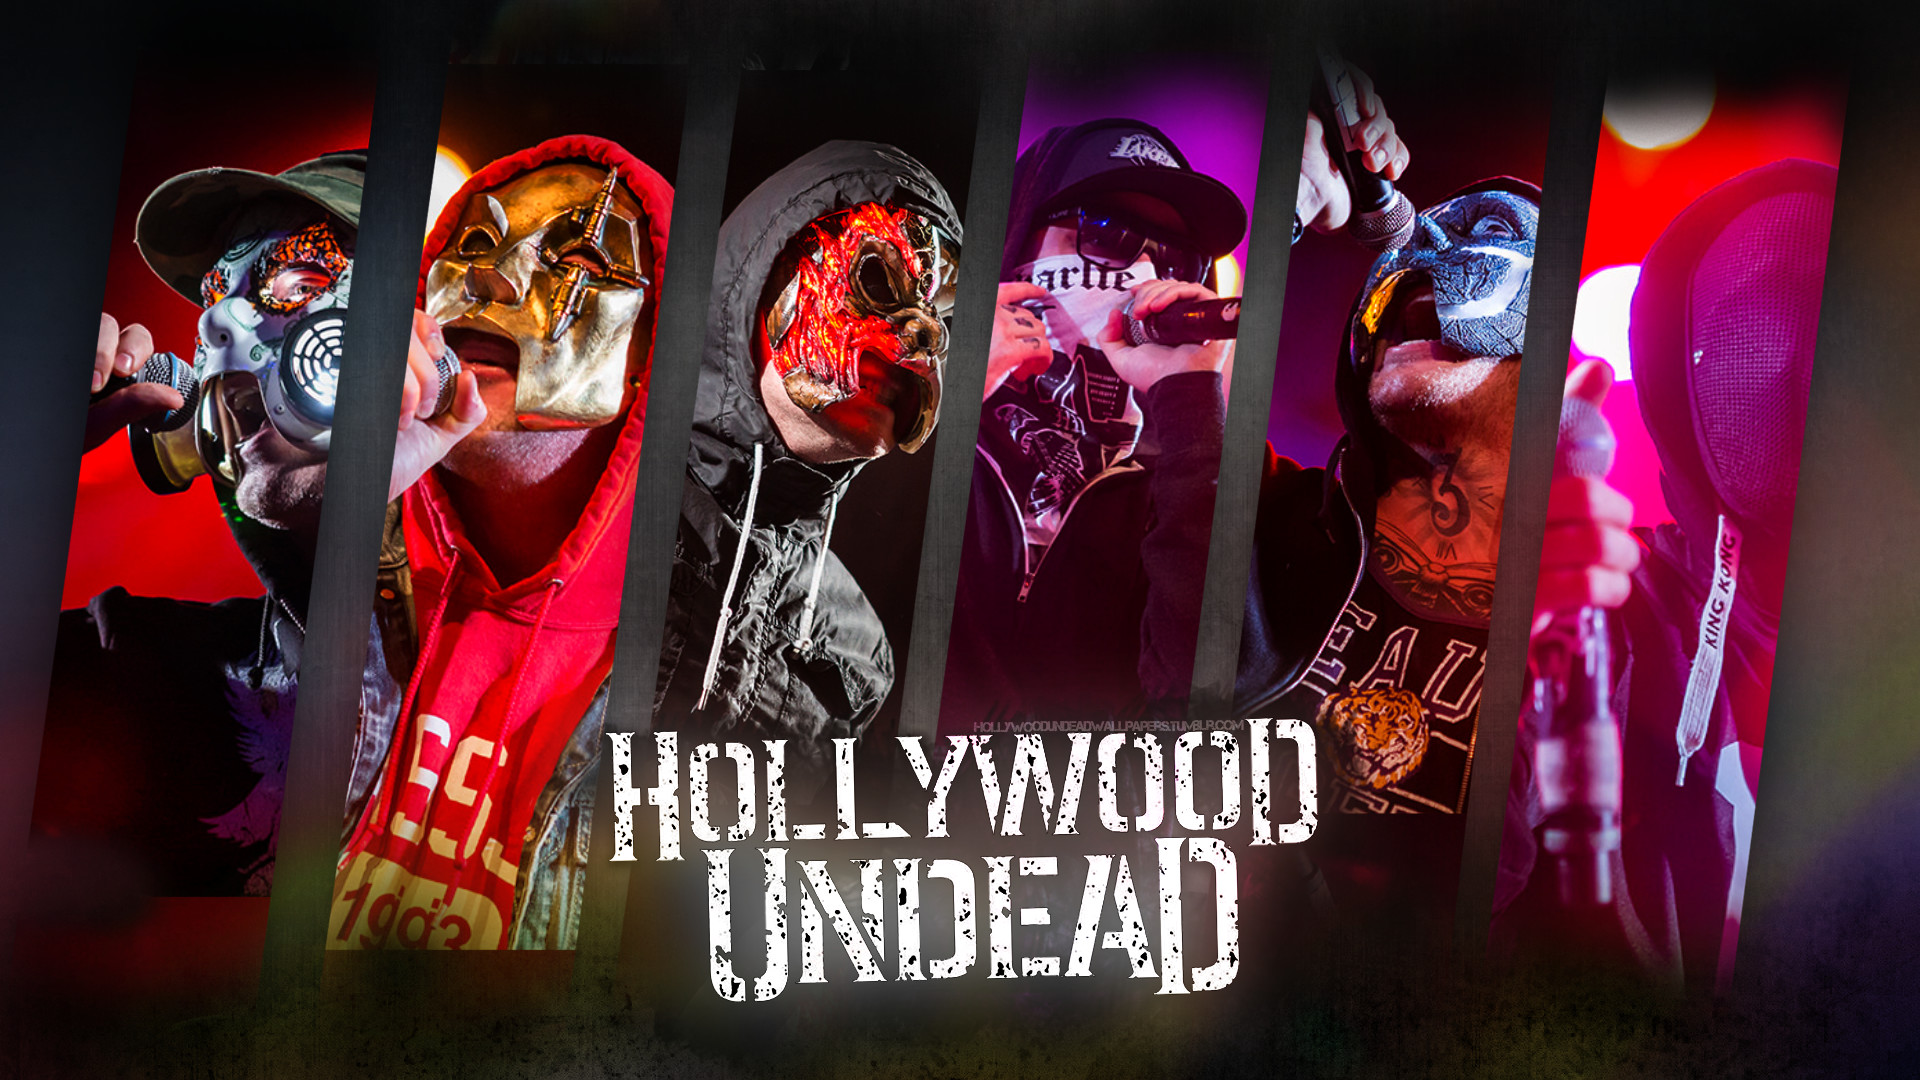 Res: 1920x1080, Hollywood Undead Wallpaper 13 - 1920 X 1080